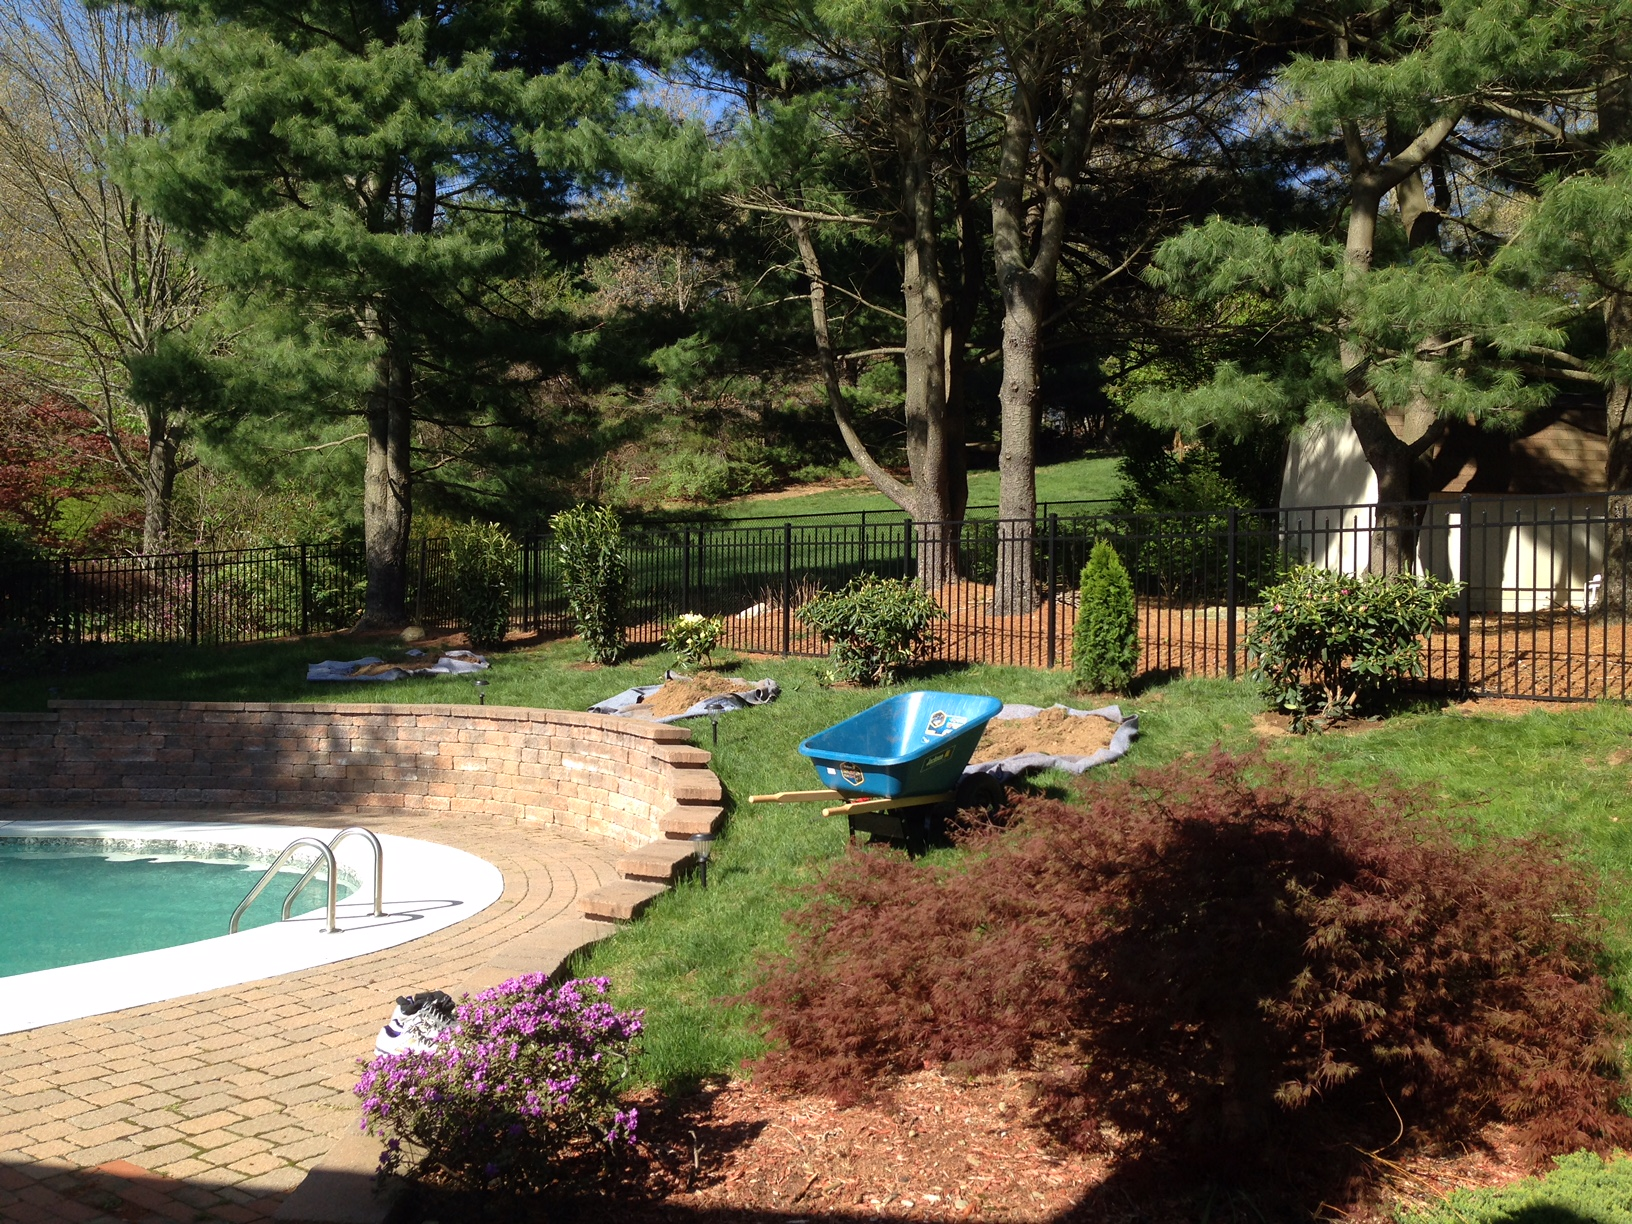 Landscaping Ideas Looking For Shrub Privacy Fence Img 0736 Jpg